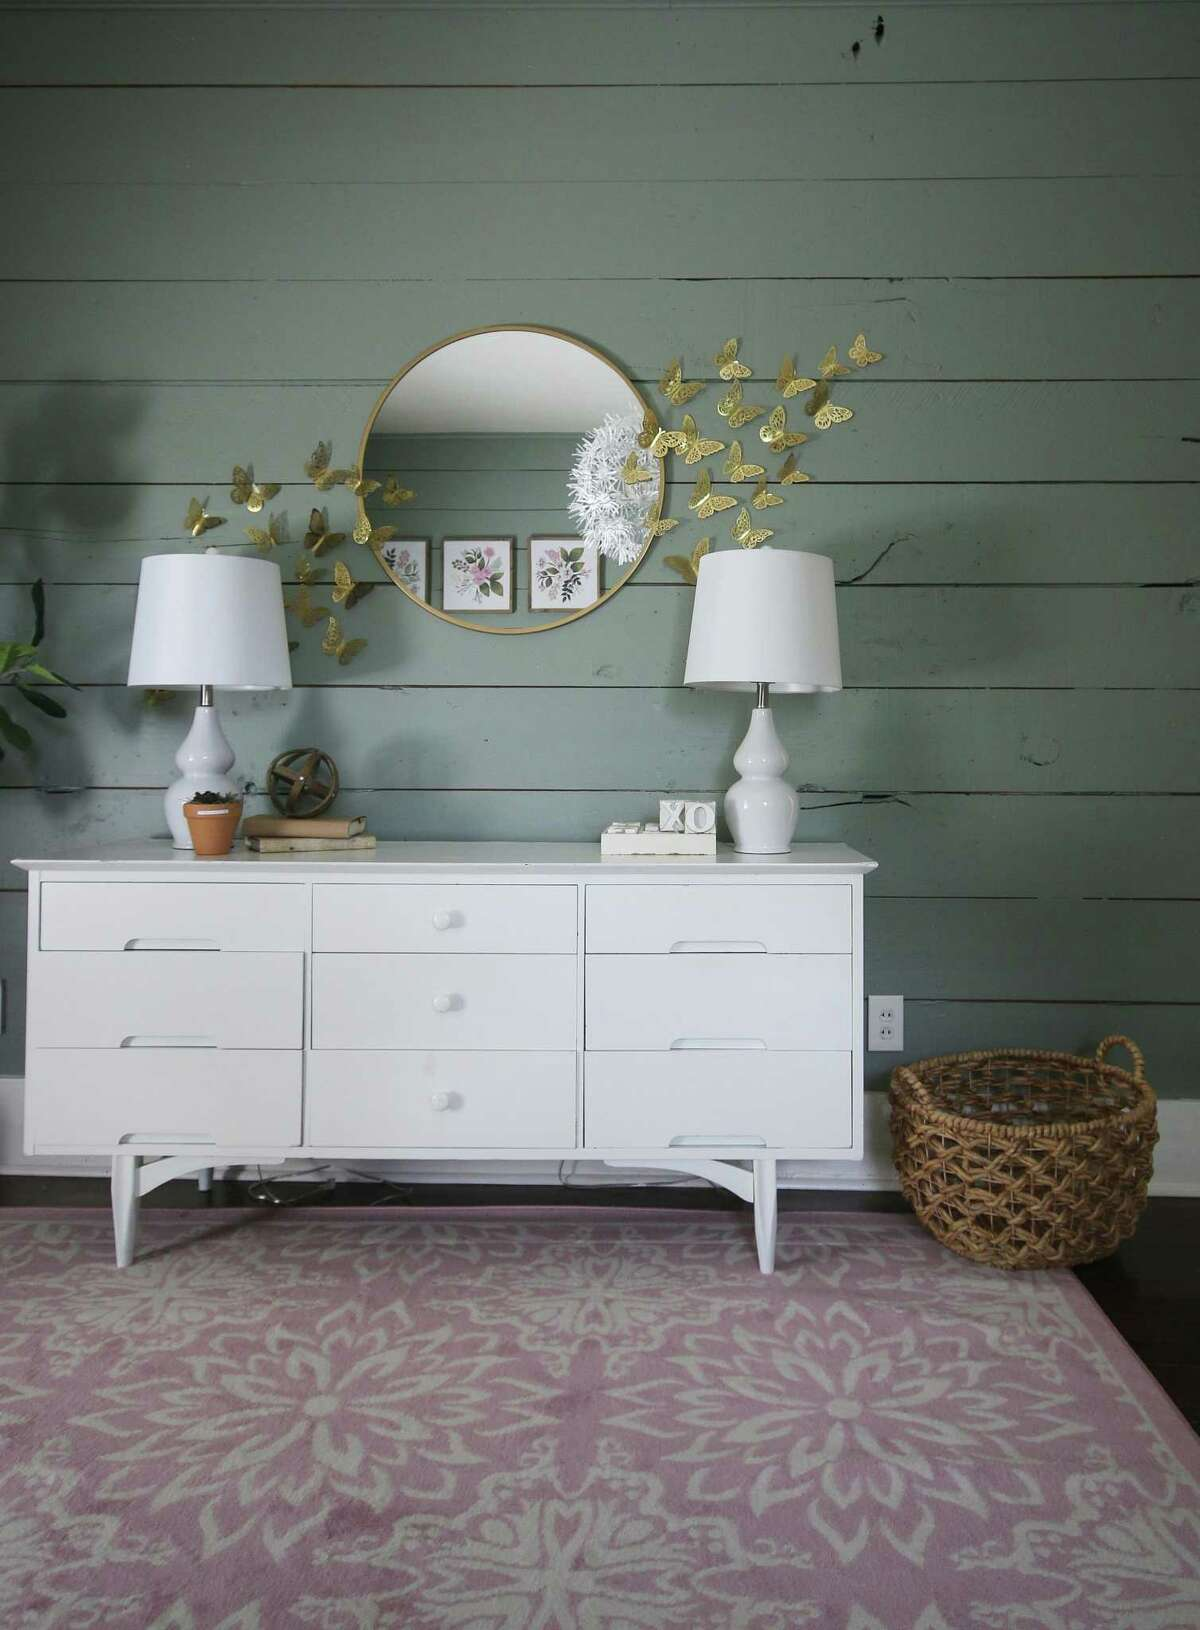 """Sherwin-Williams has chosen """"Evergreen Fog,"""" a sophisticated gray-green as its 2022 Color of the Year."""